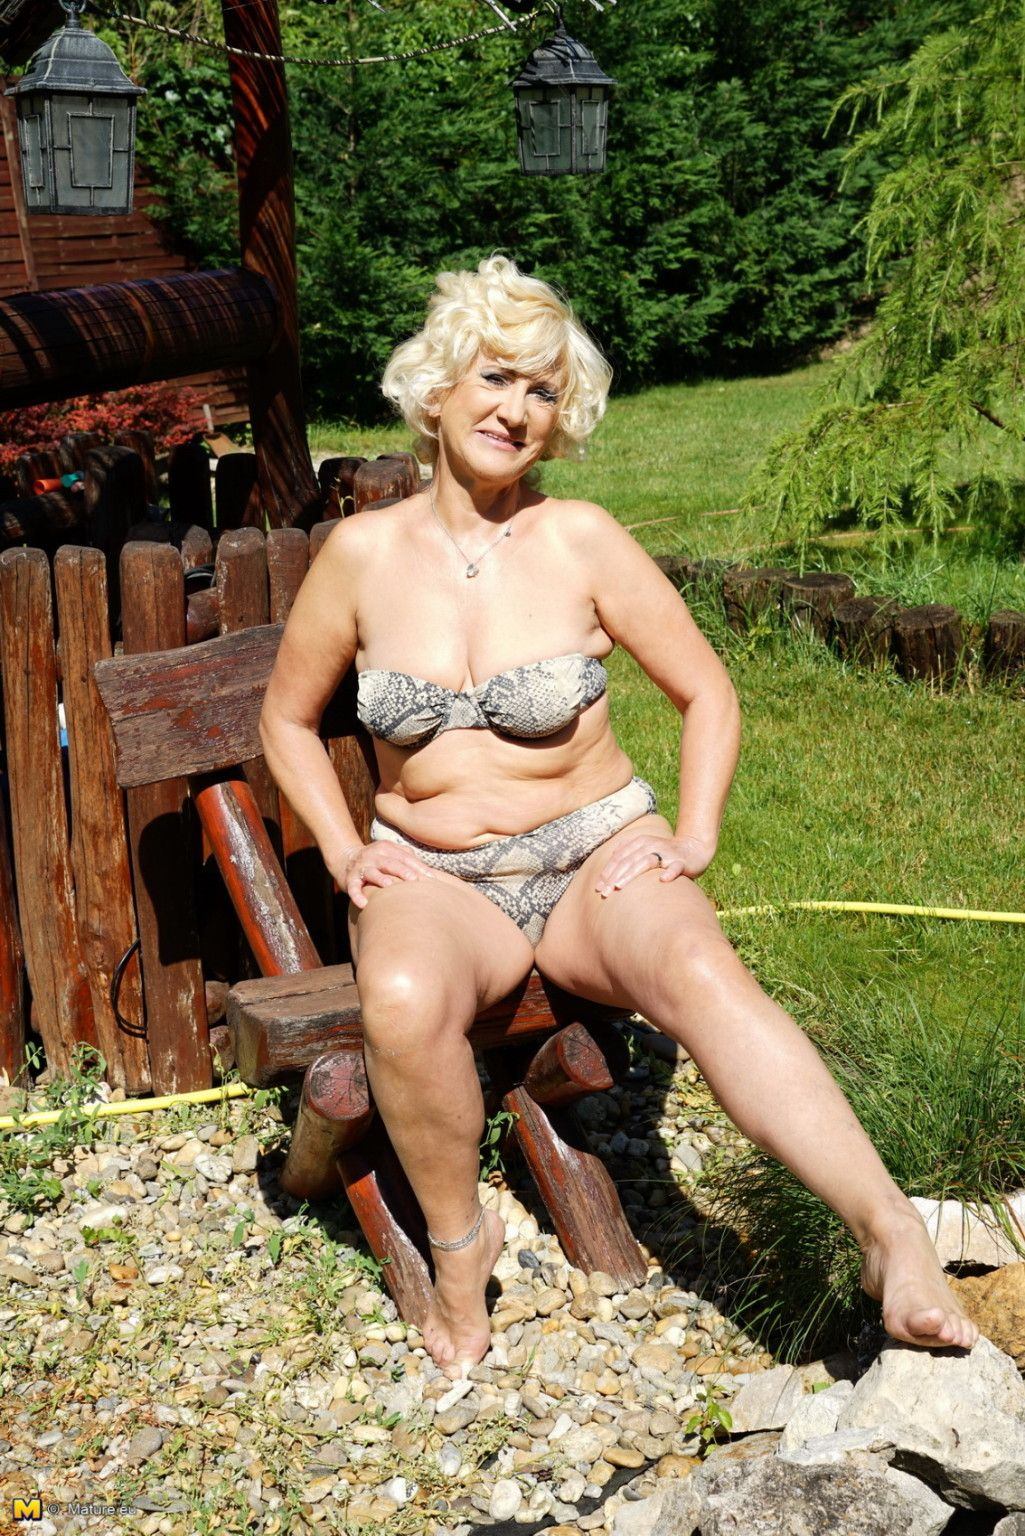 Horny blonde mature woman getting naughty in her garden at ...